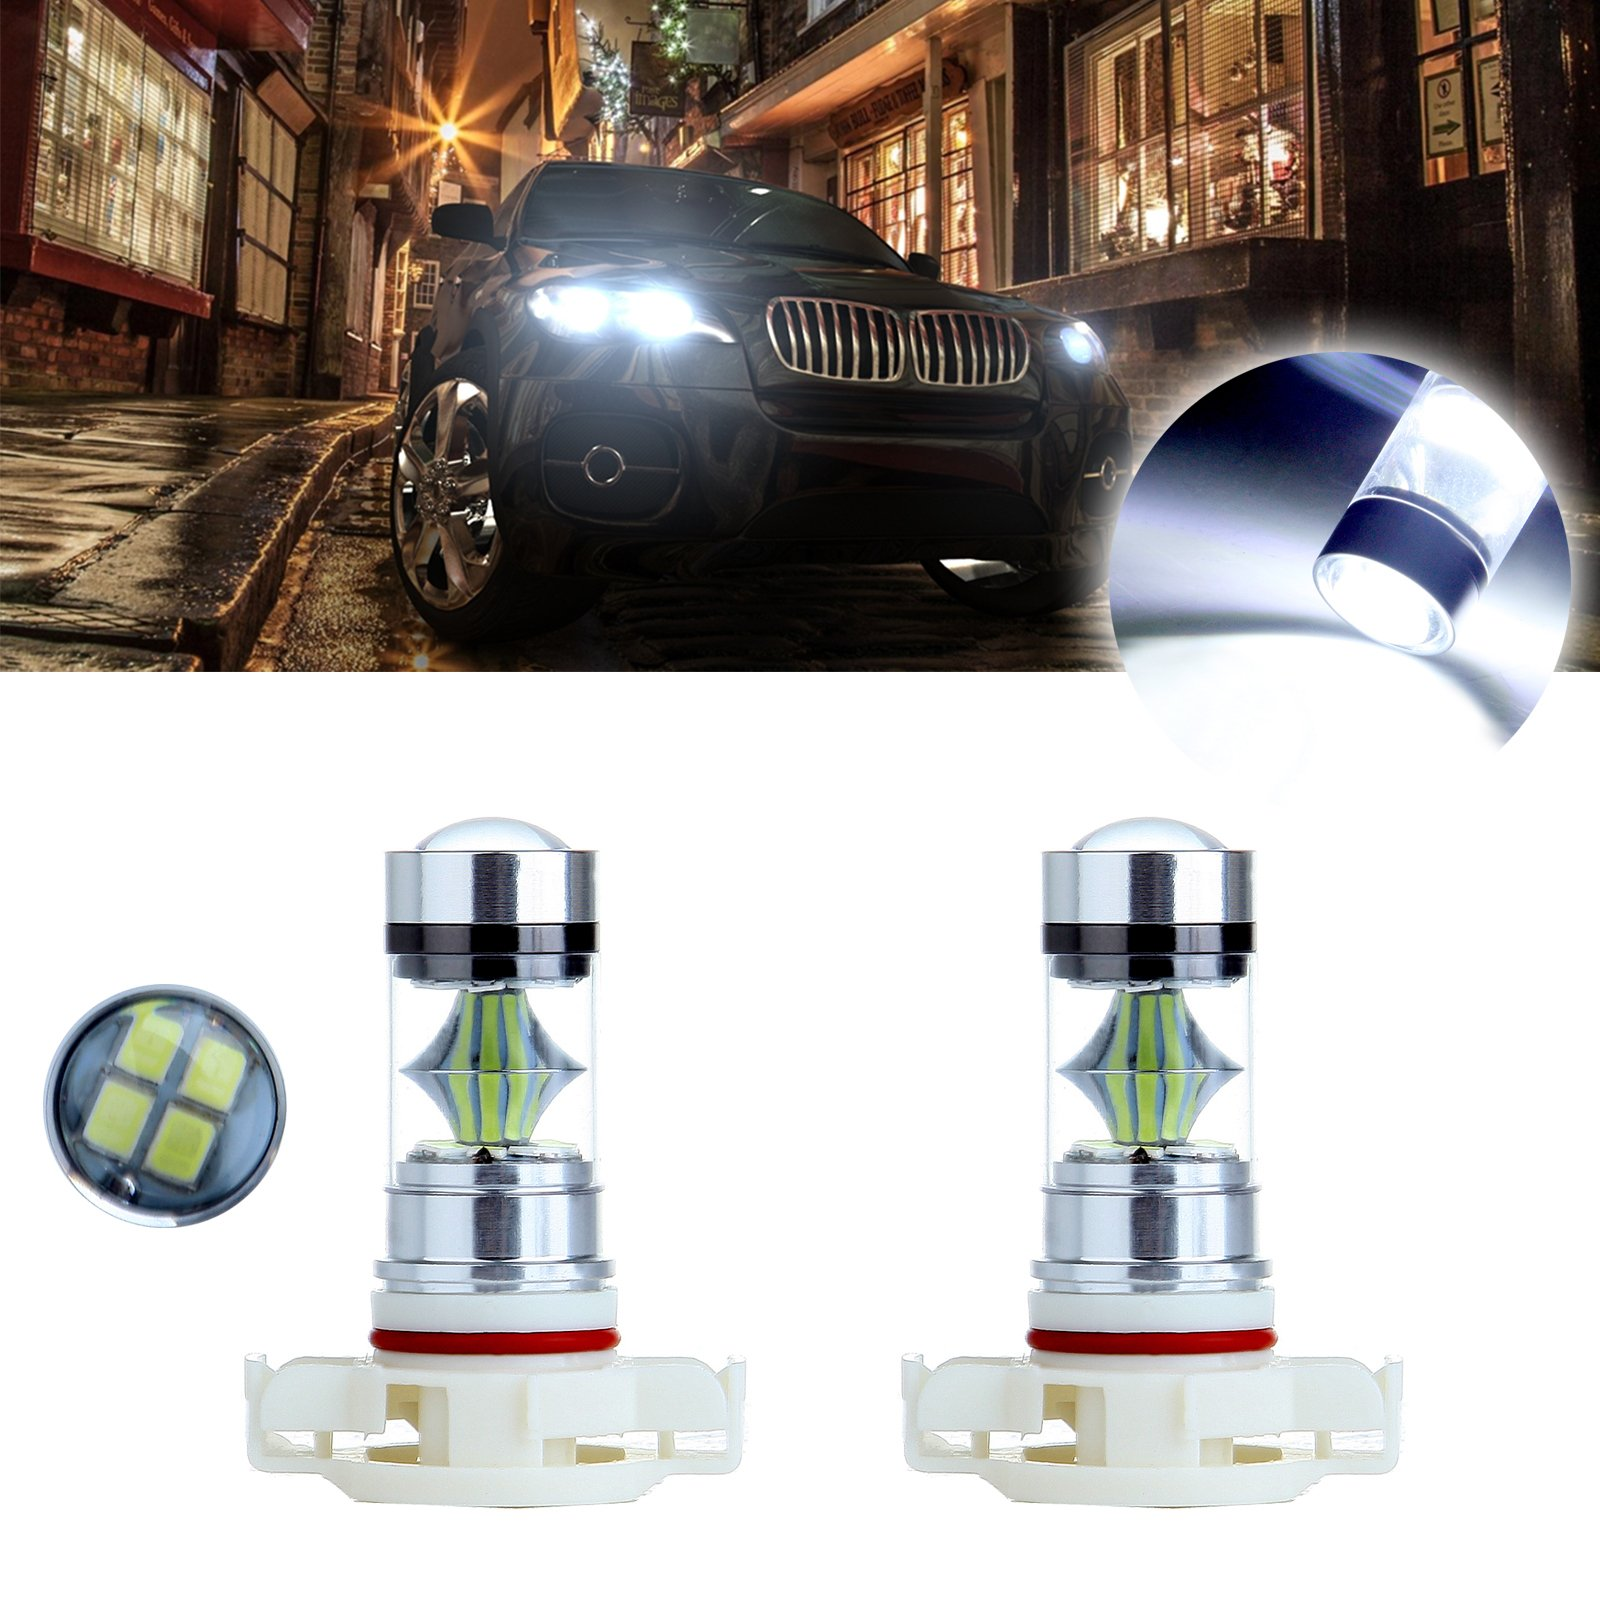 LABBYWAY 2 X 1000 Lumens Super Bright 6000K Bulbs H16 5202 5201 9009 LED Used For DRL or fog Lights Replacement,Xenon White